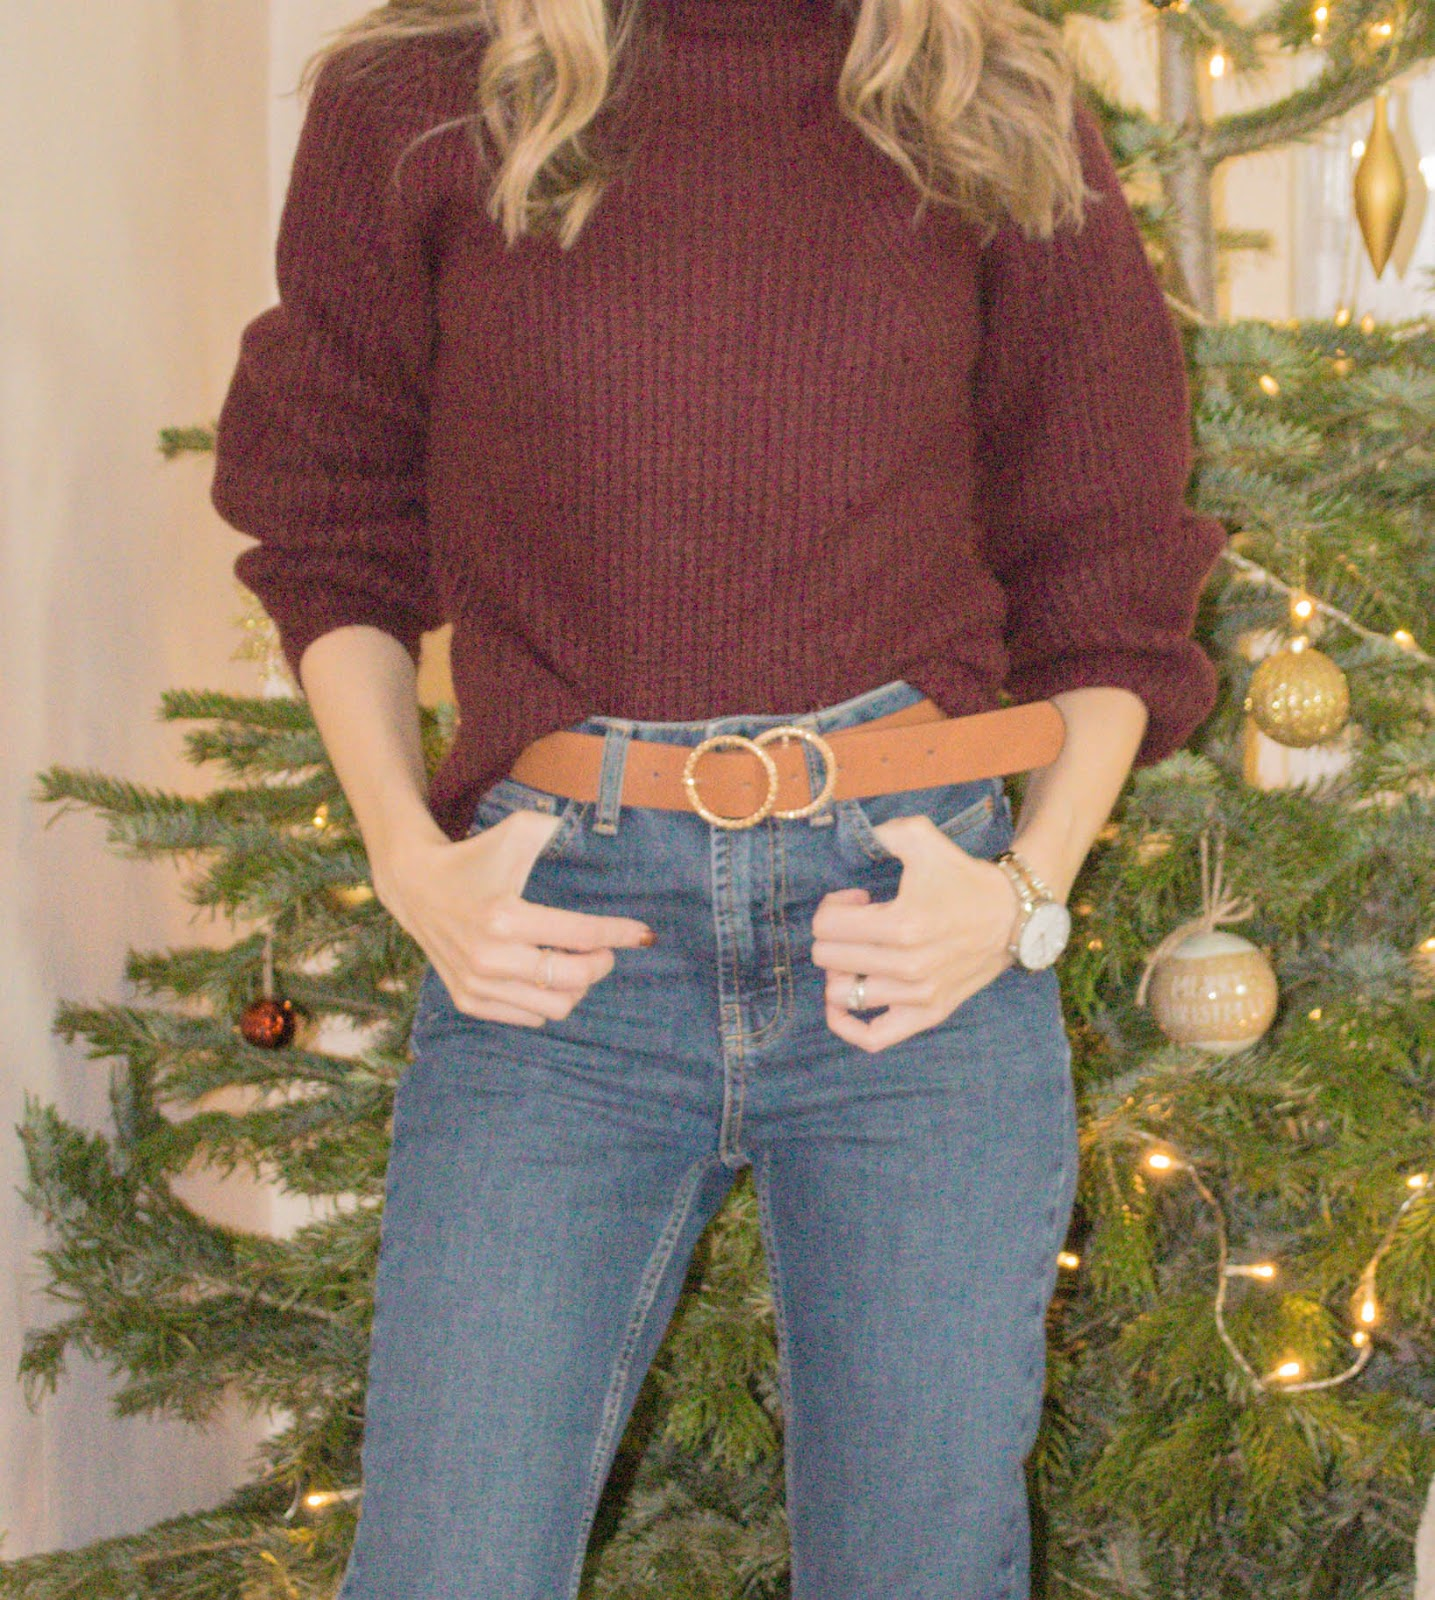 High street jeans and jumper